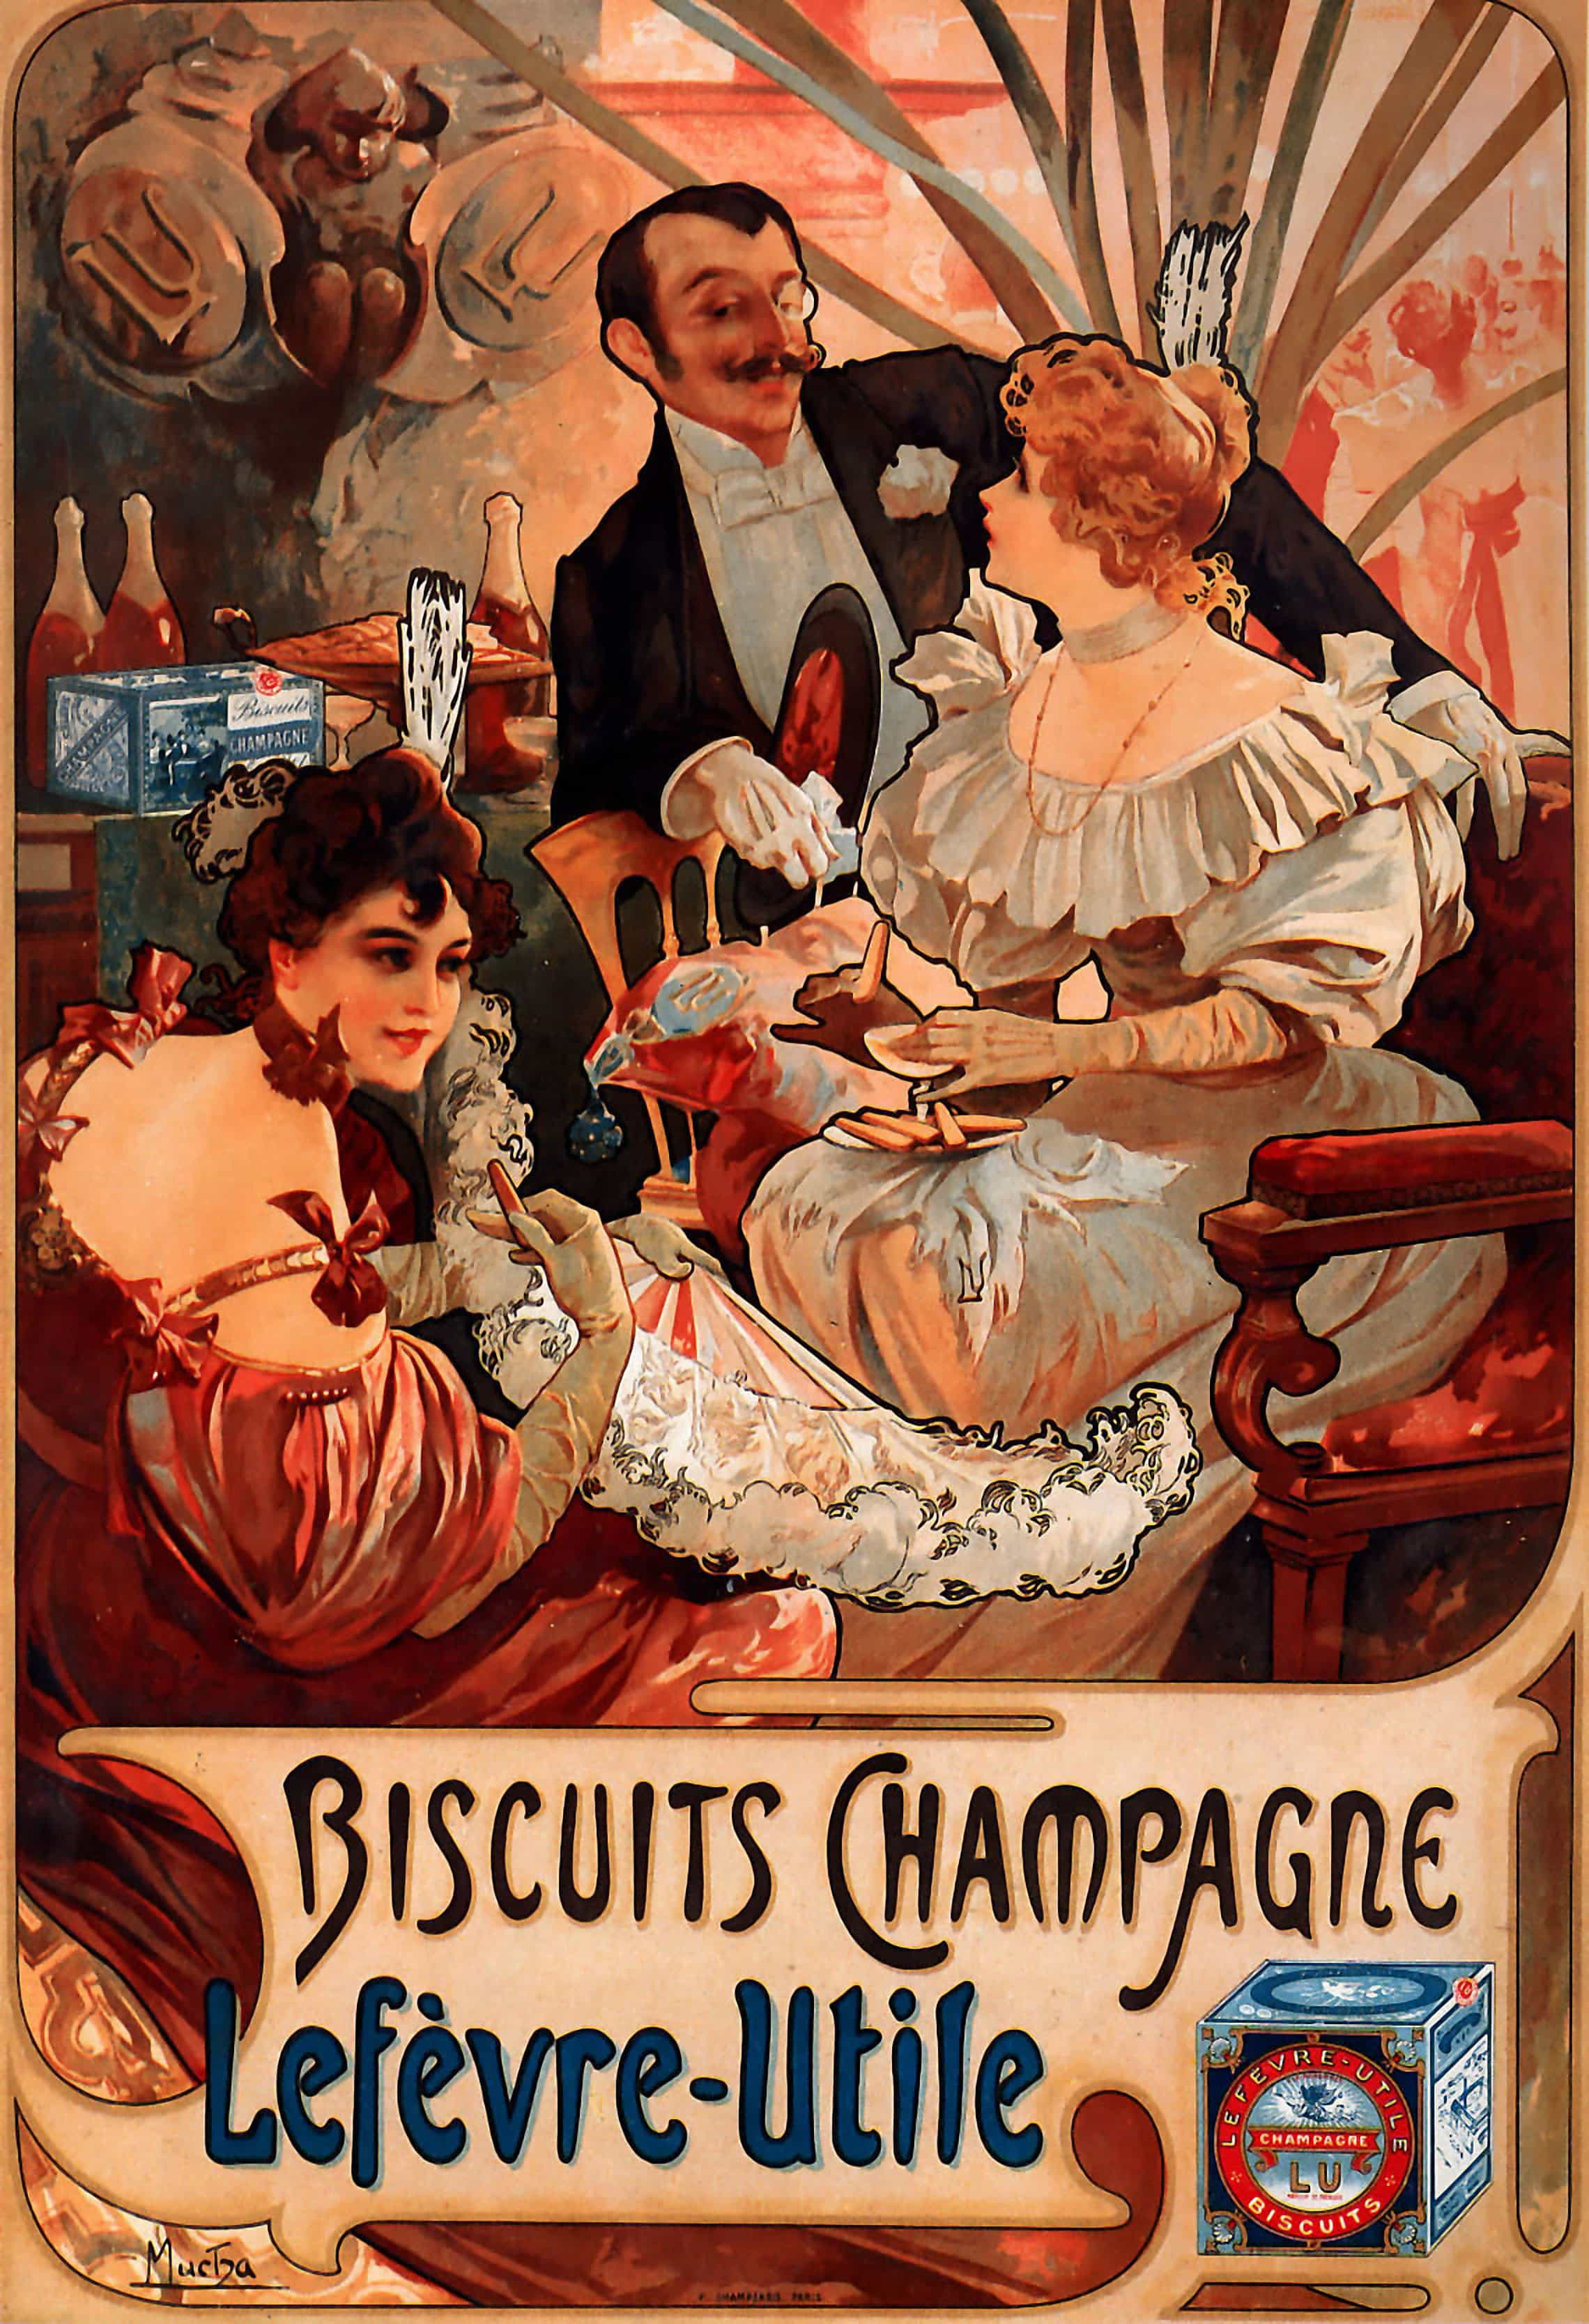 Biscuits champagne lef vre utile poster alfons mucha for Deco utile cuisine